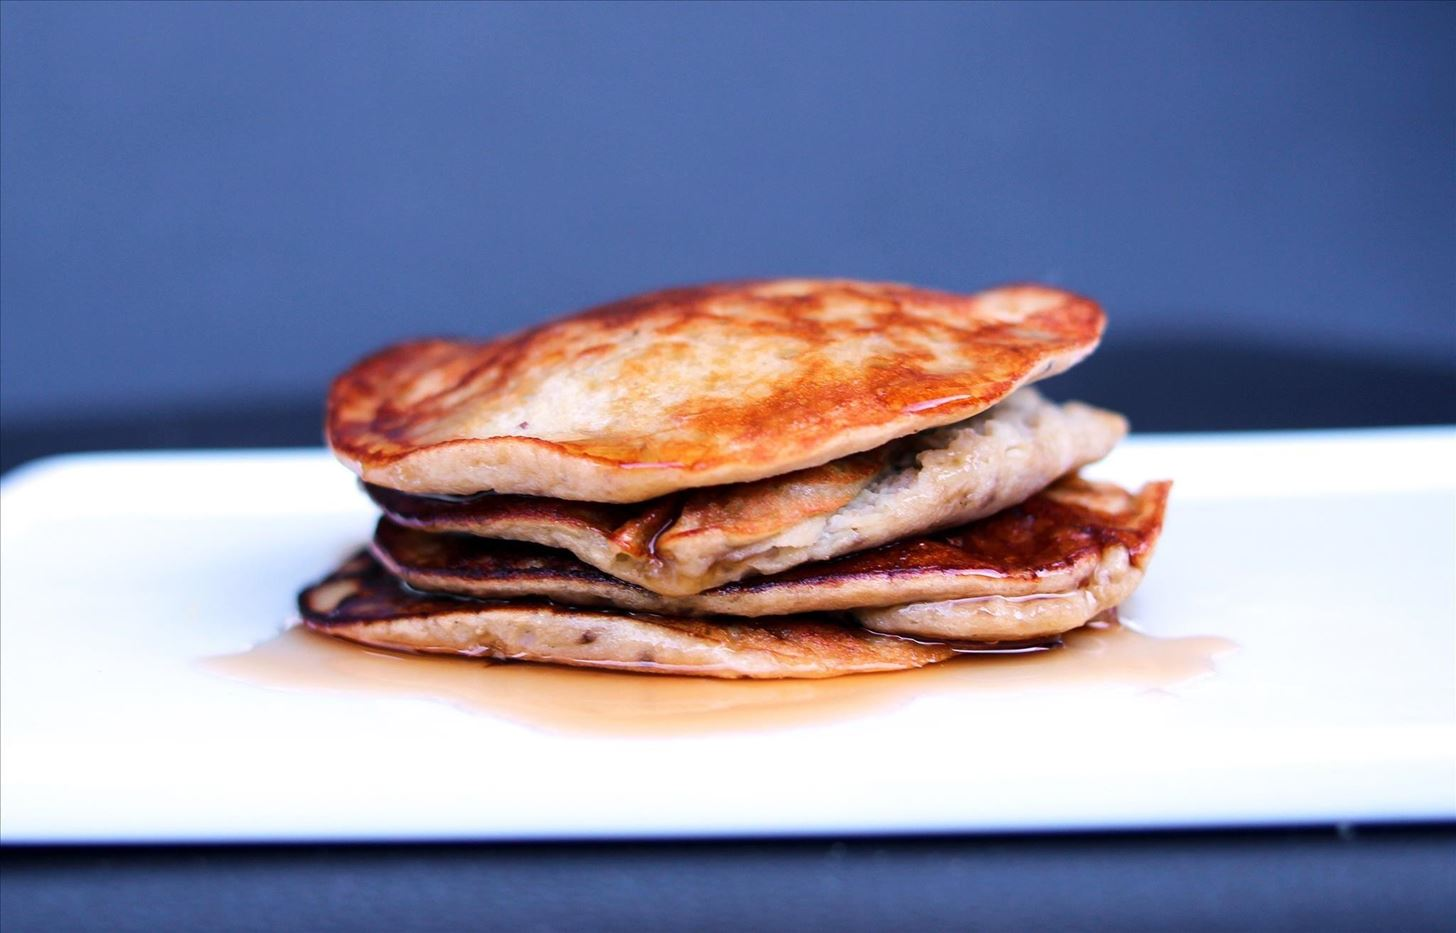 cook pancakes on high or low